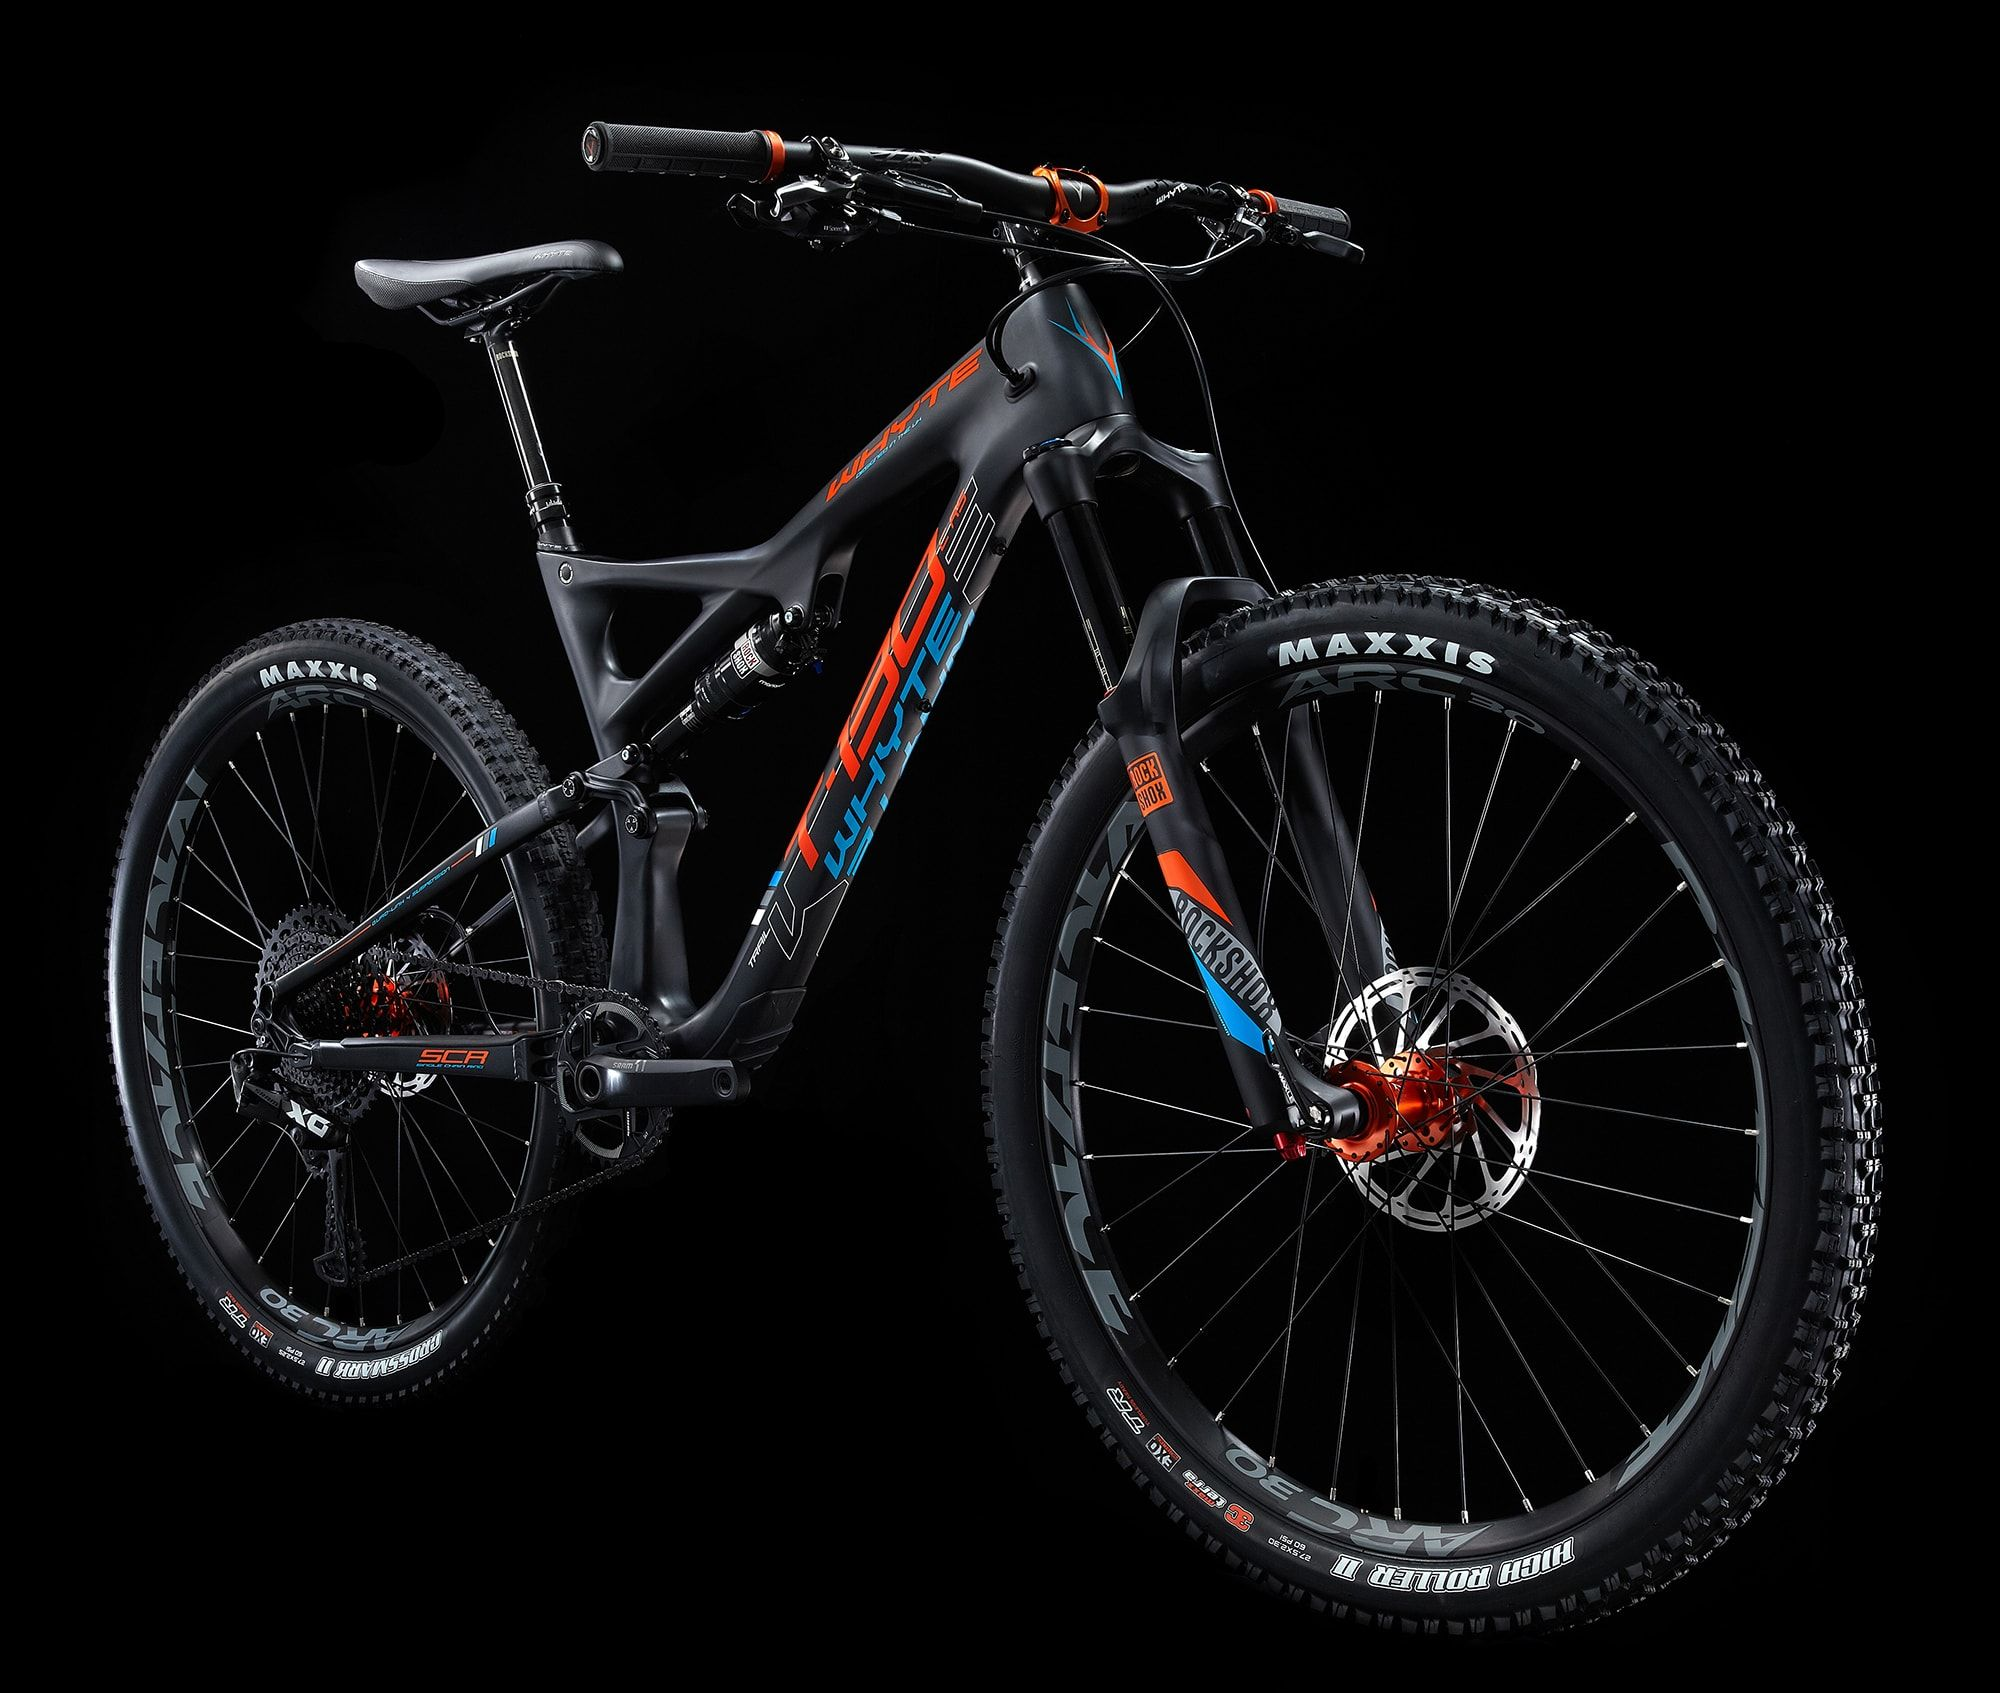 Just Arrived Is The Awesome Whyte T 130 C Rs With Sram Eagle 1 X